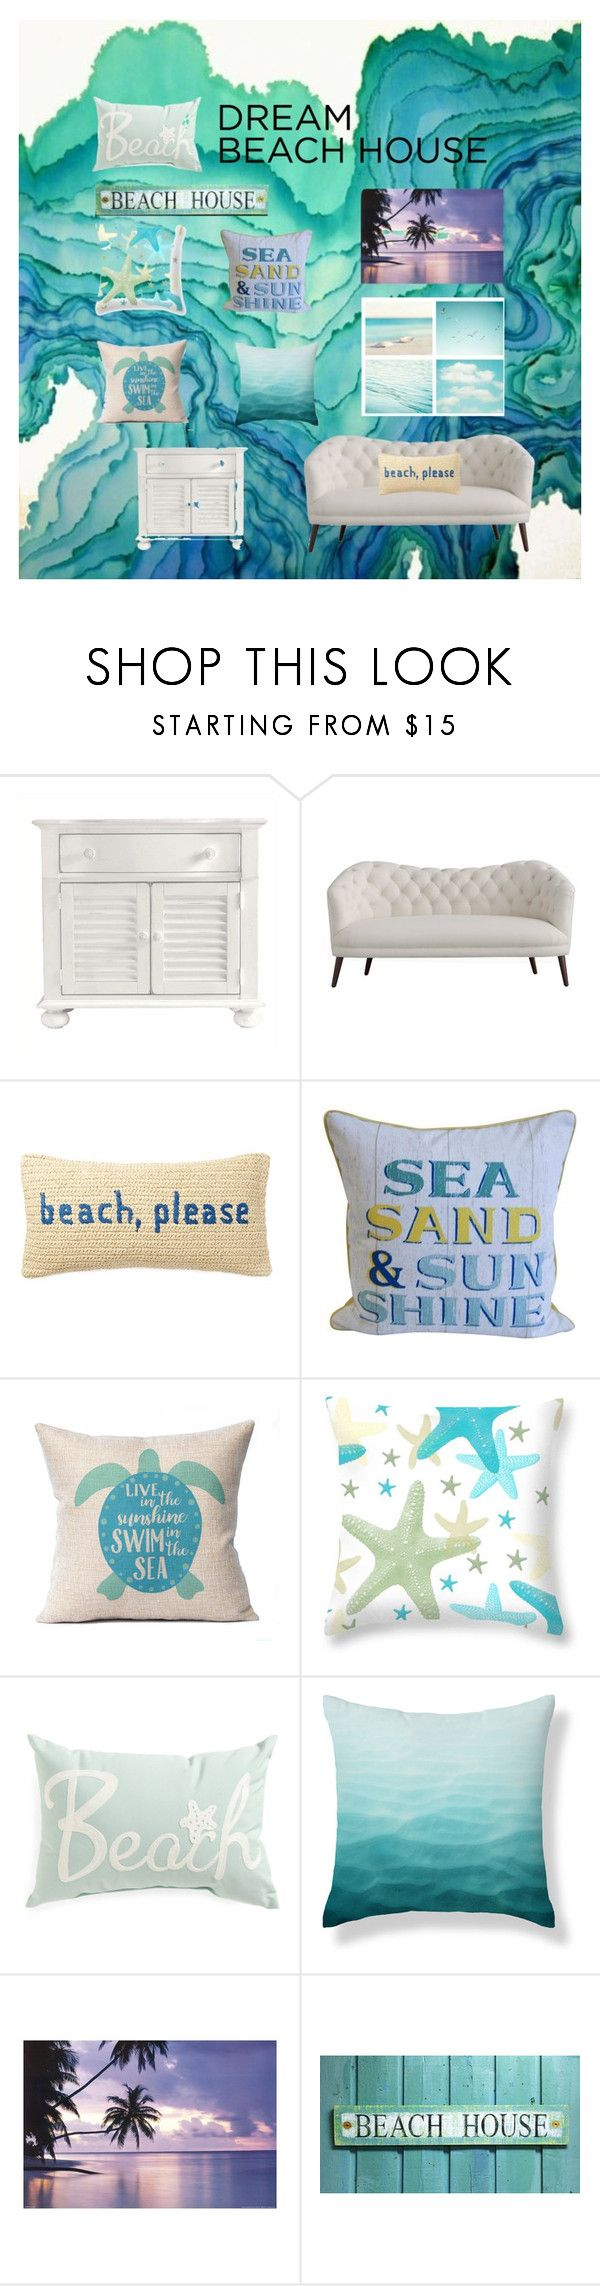 """""""Dream beach house 🌊"""" by amazingness1111 ❤ liked on Polyvore featuring interior, interiors, interior design, home, home decor, interior decorating, Stanley Furniture, Nordstrom Rack and WALL"""